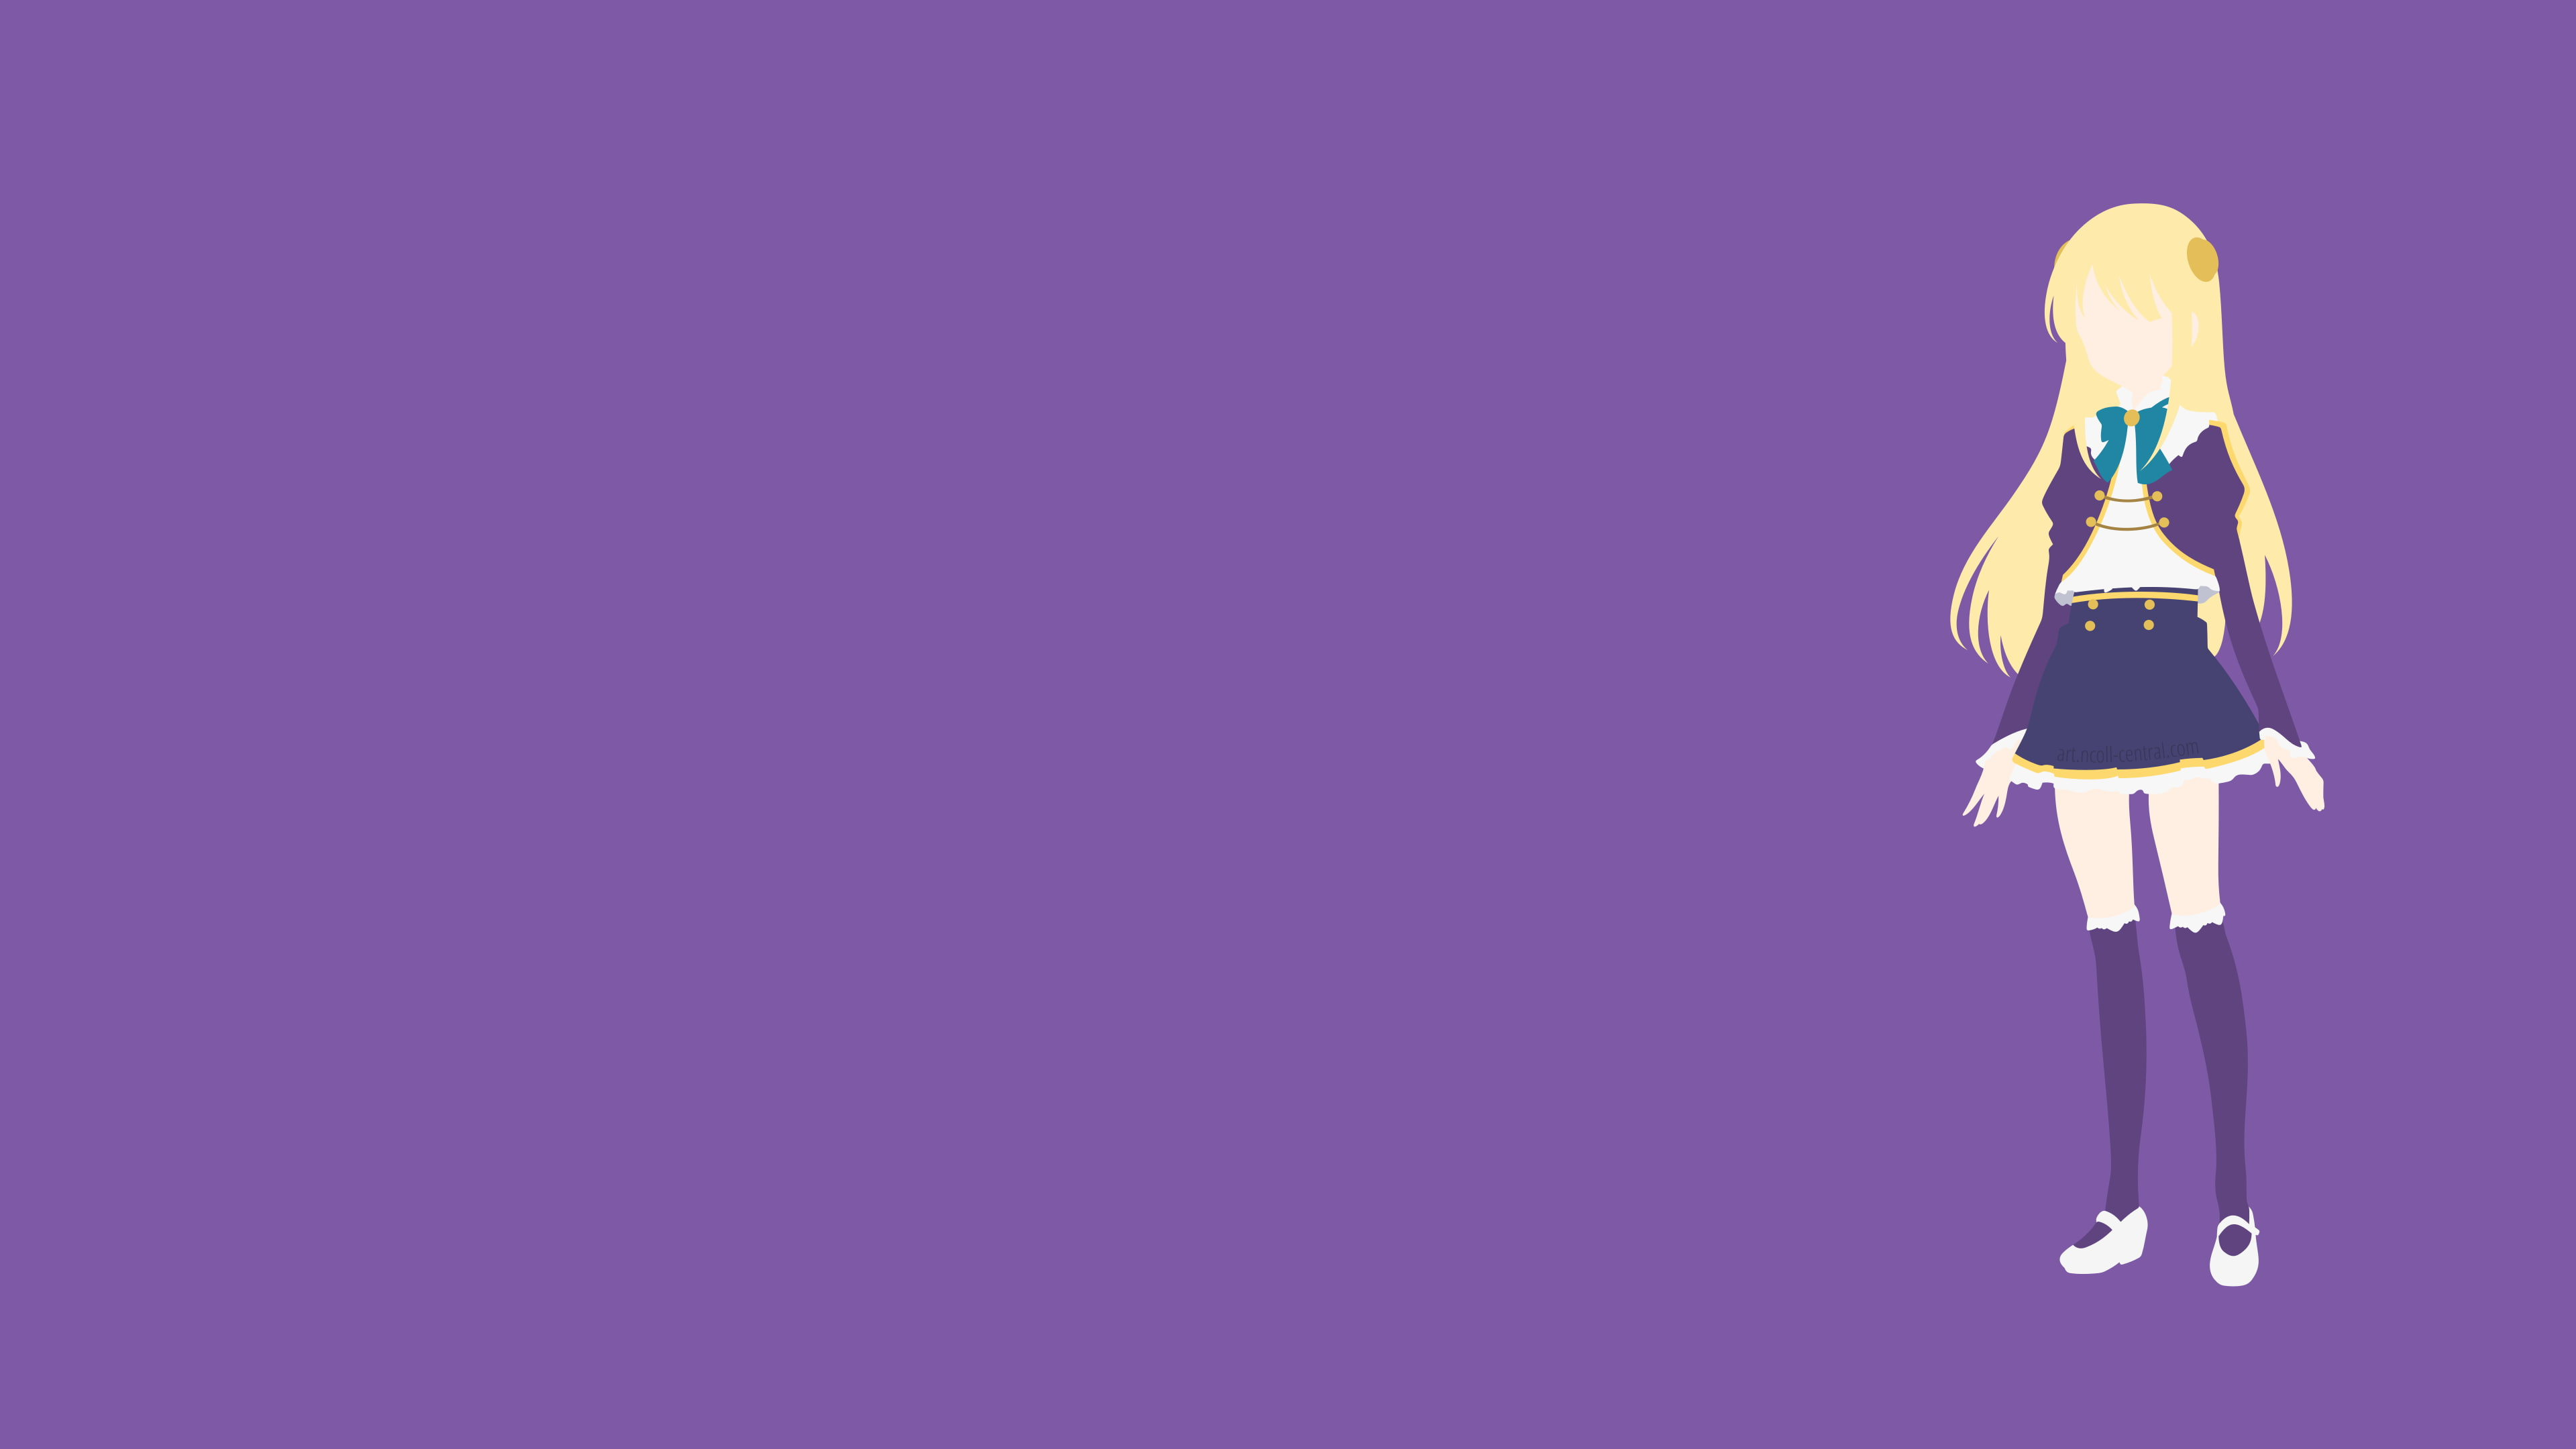 HD wallpaper Anime In Another World With My Smartphone Yumina 3840x2160